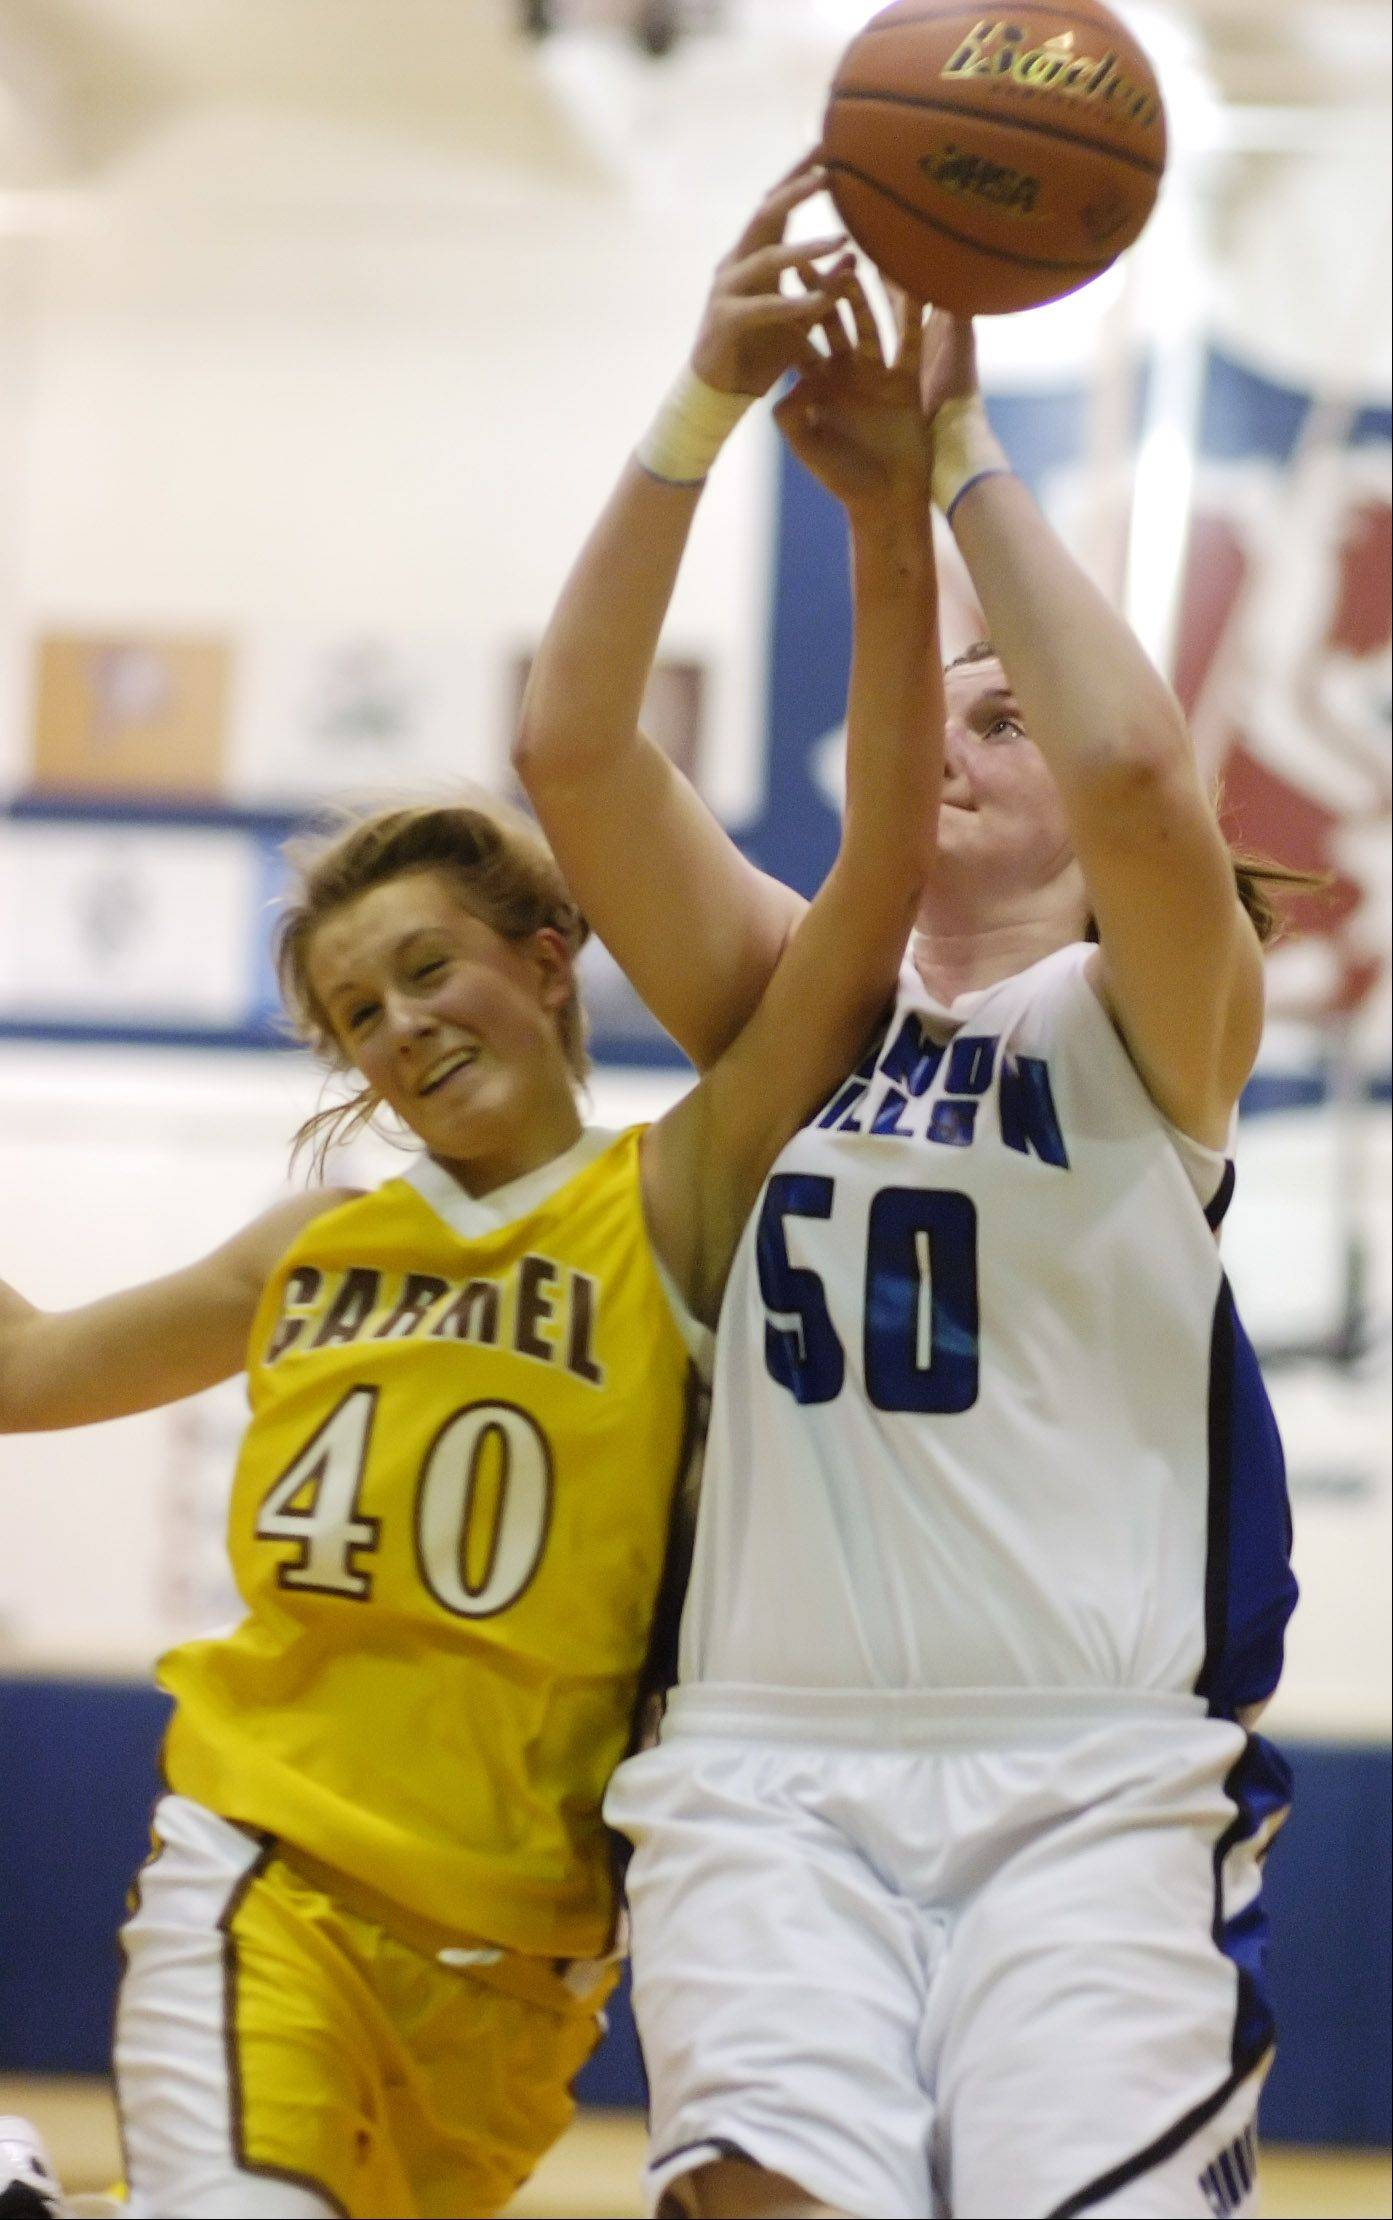 Carmel's Leah Lach, left and Vernon Hills' Meri Bennett-Swanson make contact during Tuesday's basketball game in Arlington Heights.